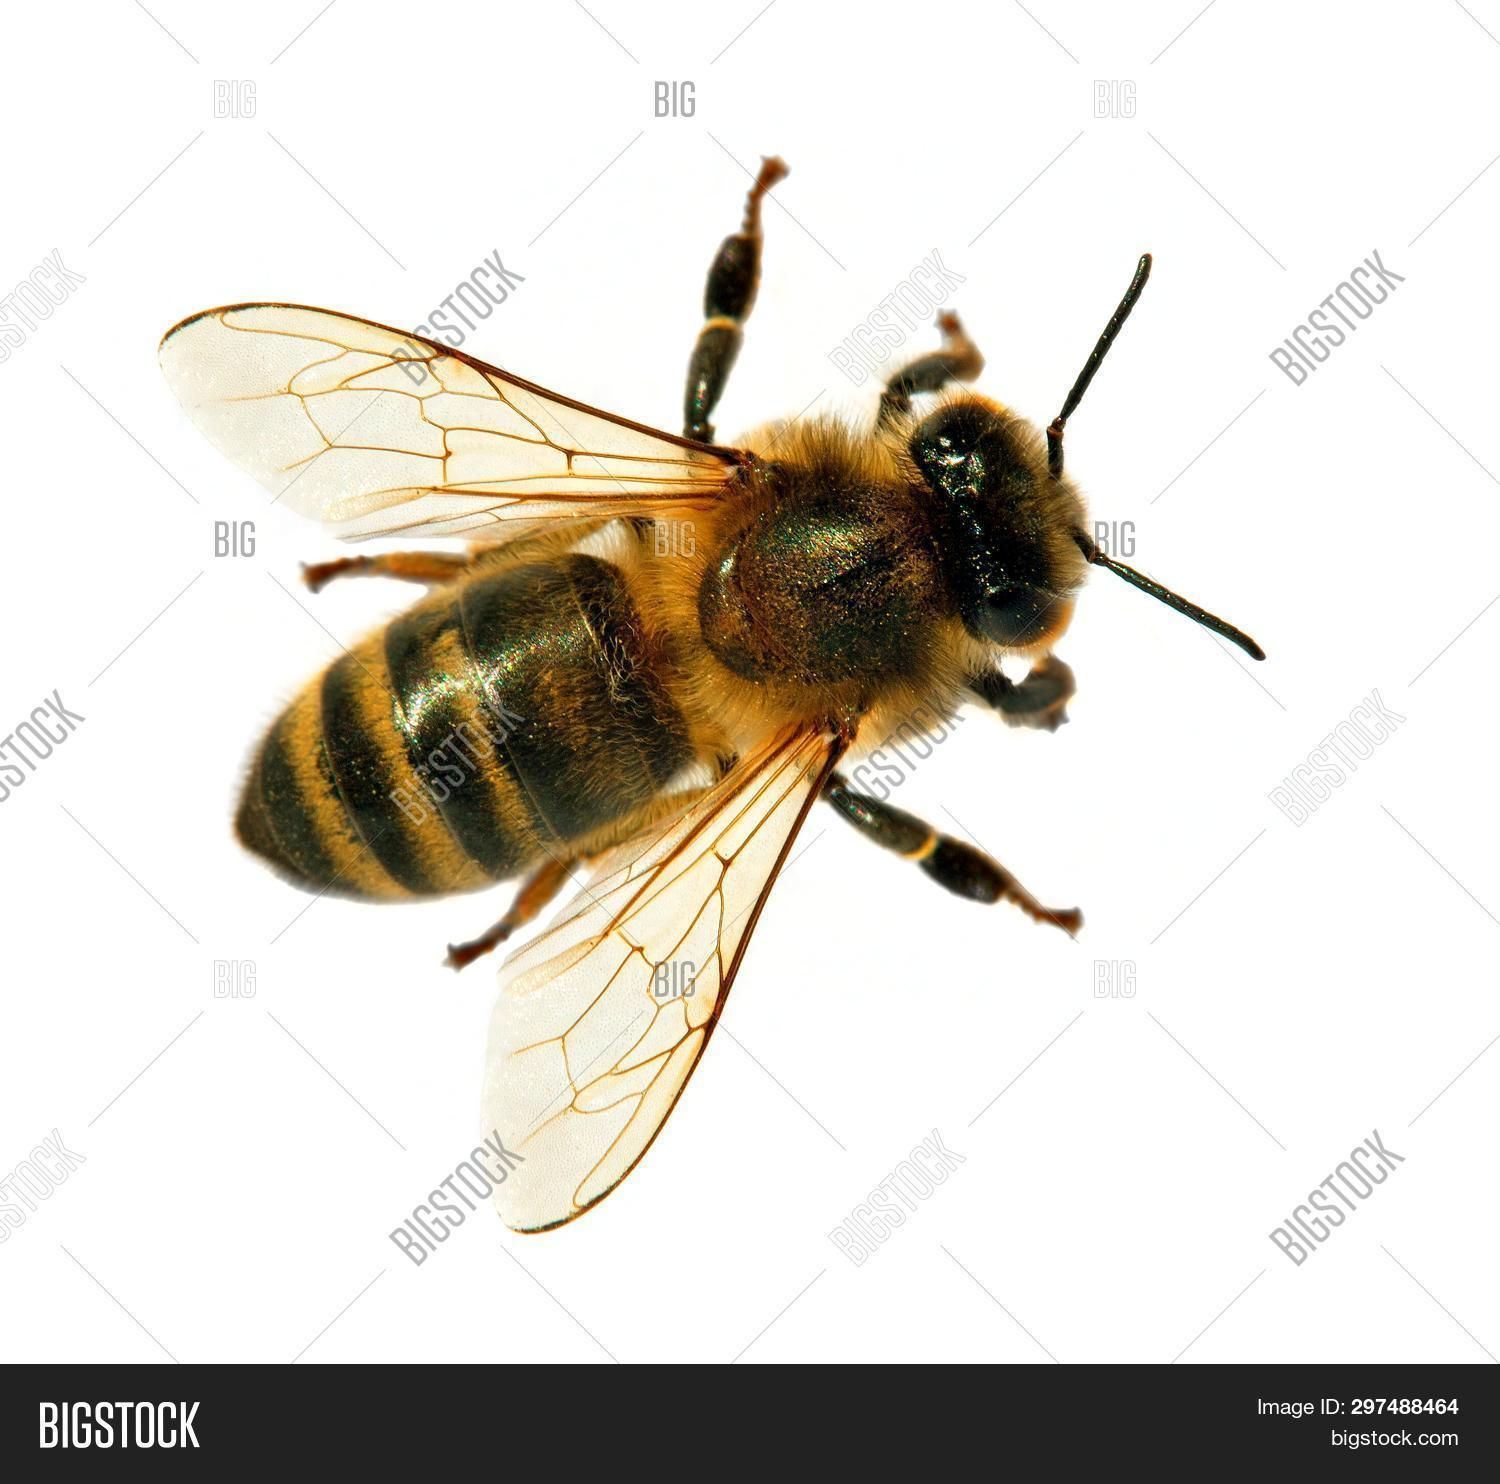 animal,apis,background,beautiful,beauty,bee,bug,close,close-up,closeup,color,cut,detail,distribute,european,eye,flower,fly,garden,gathering,gold,golden,honey,honey-bee,honeybee,insect,isolate,isolated,macro,mellifera,nature,pollen,pollinate,pollinated,pollinating,pollination,pollinator,proboscis,rostrum,single,small,spring,springtime,up,view,white,wild,wing,yellow